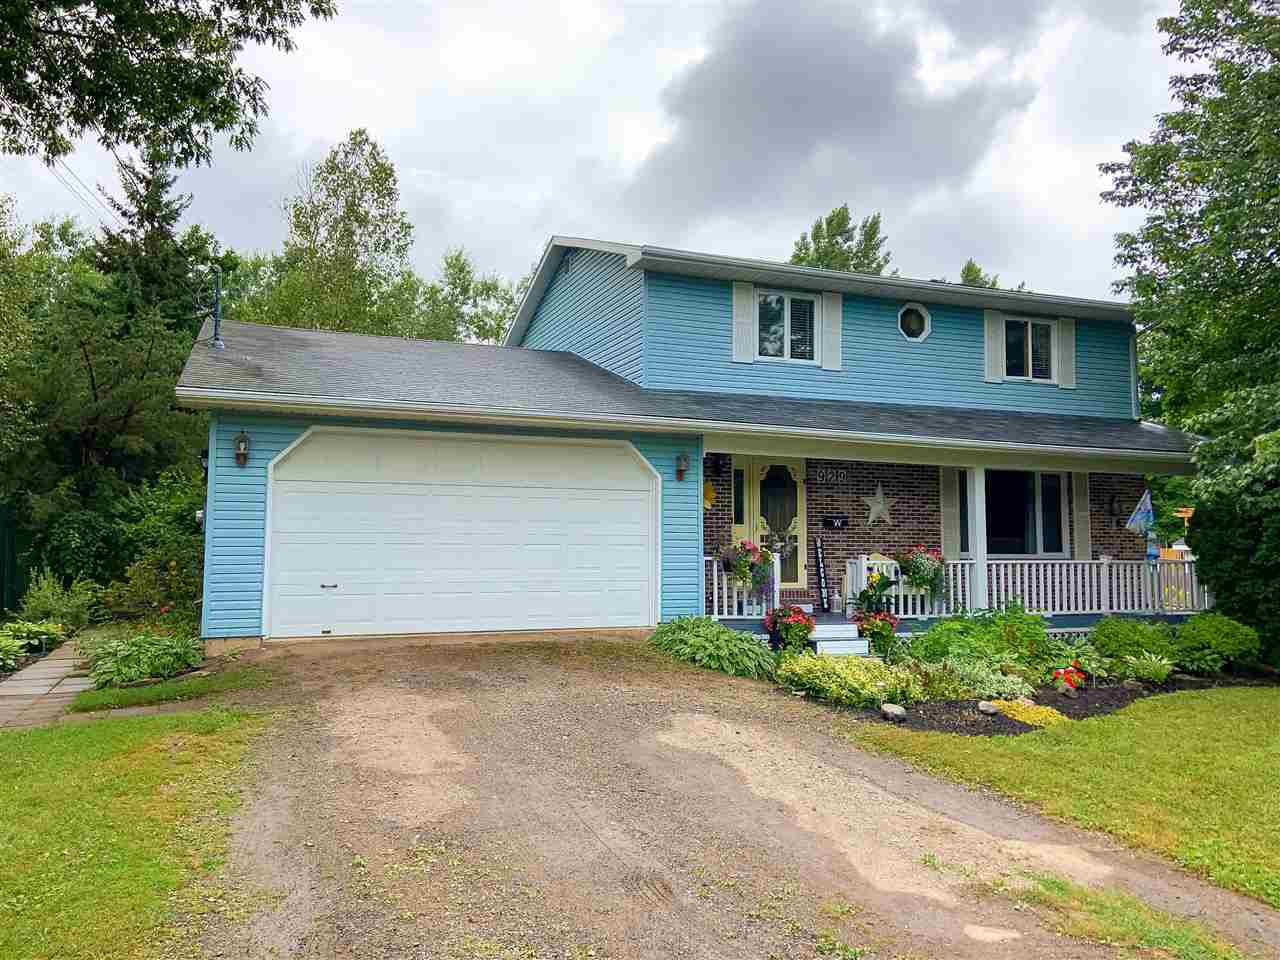 Main Photo: 929 Parkside Drive in Centreville: 404-Kings County Residential for sale (Annapolis Valley)  : MLS®# 202016417